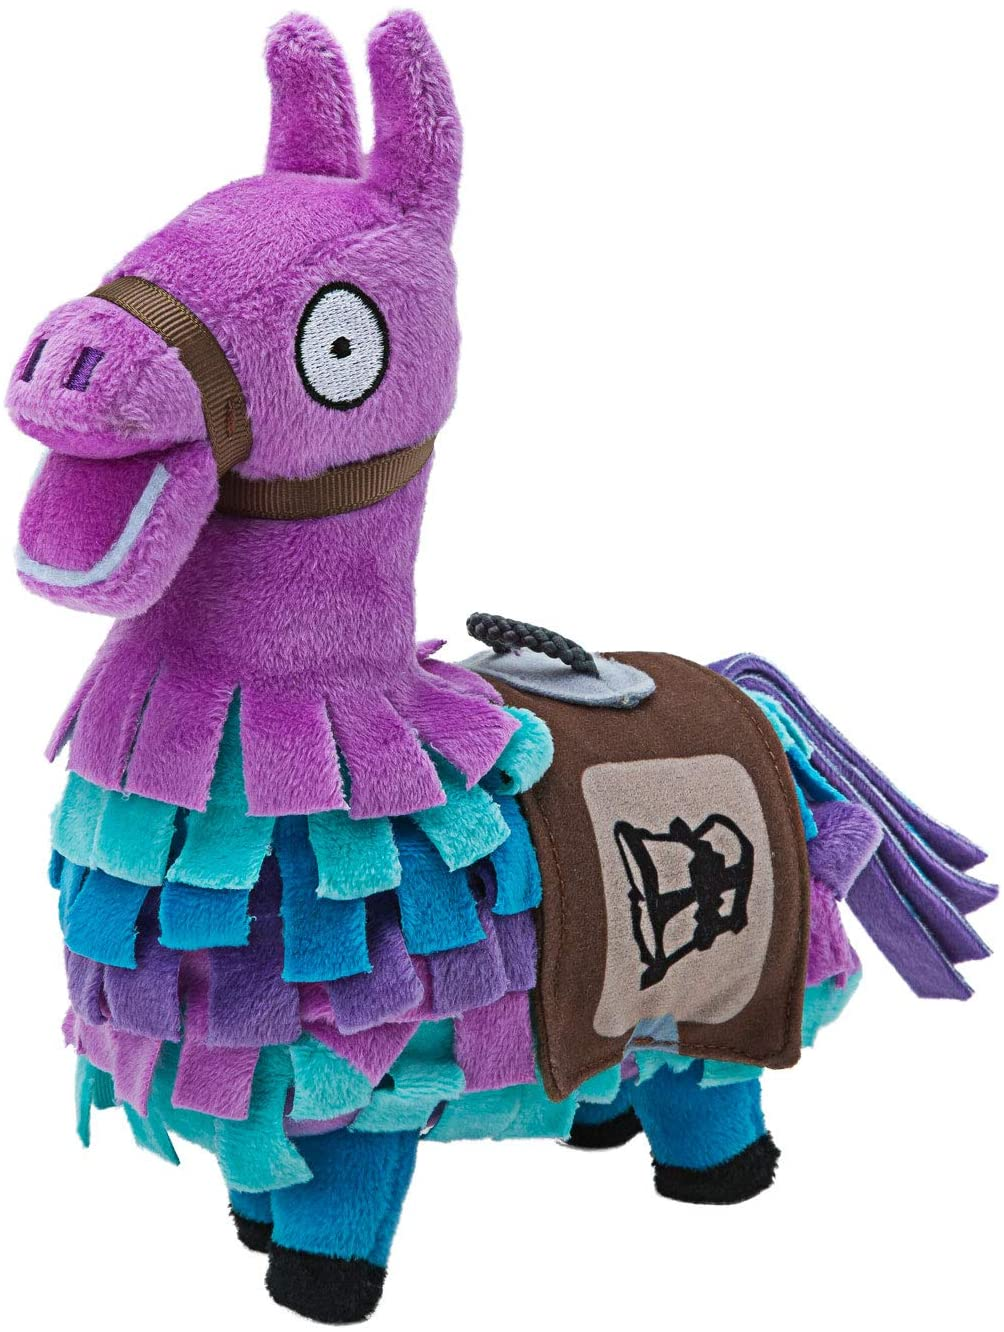 A soft and cuddly version of the Loot Llama that you can hug.